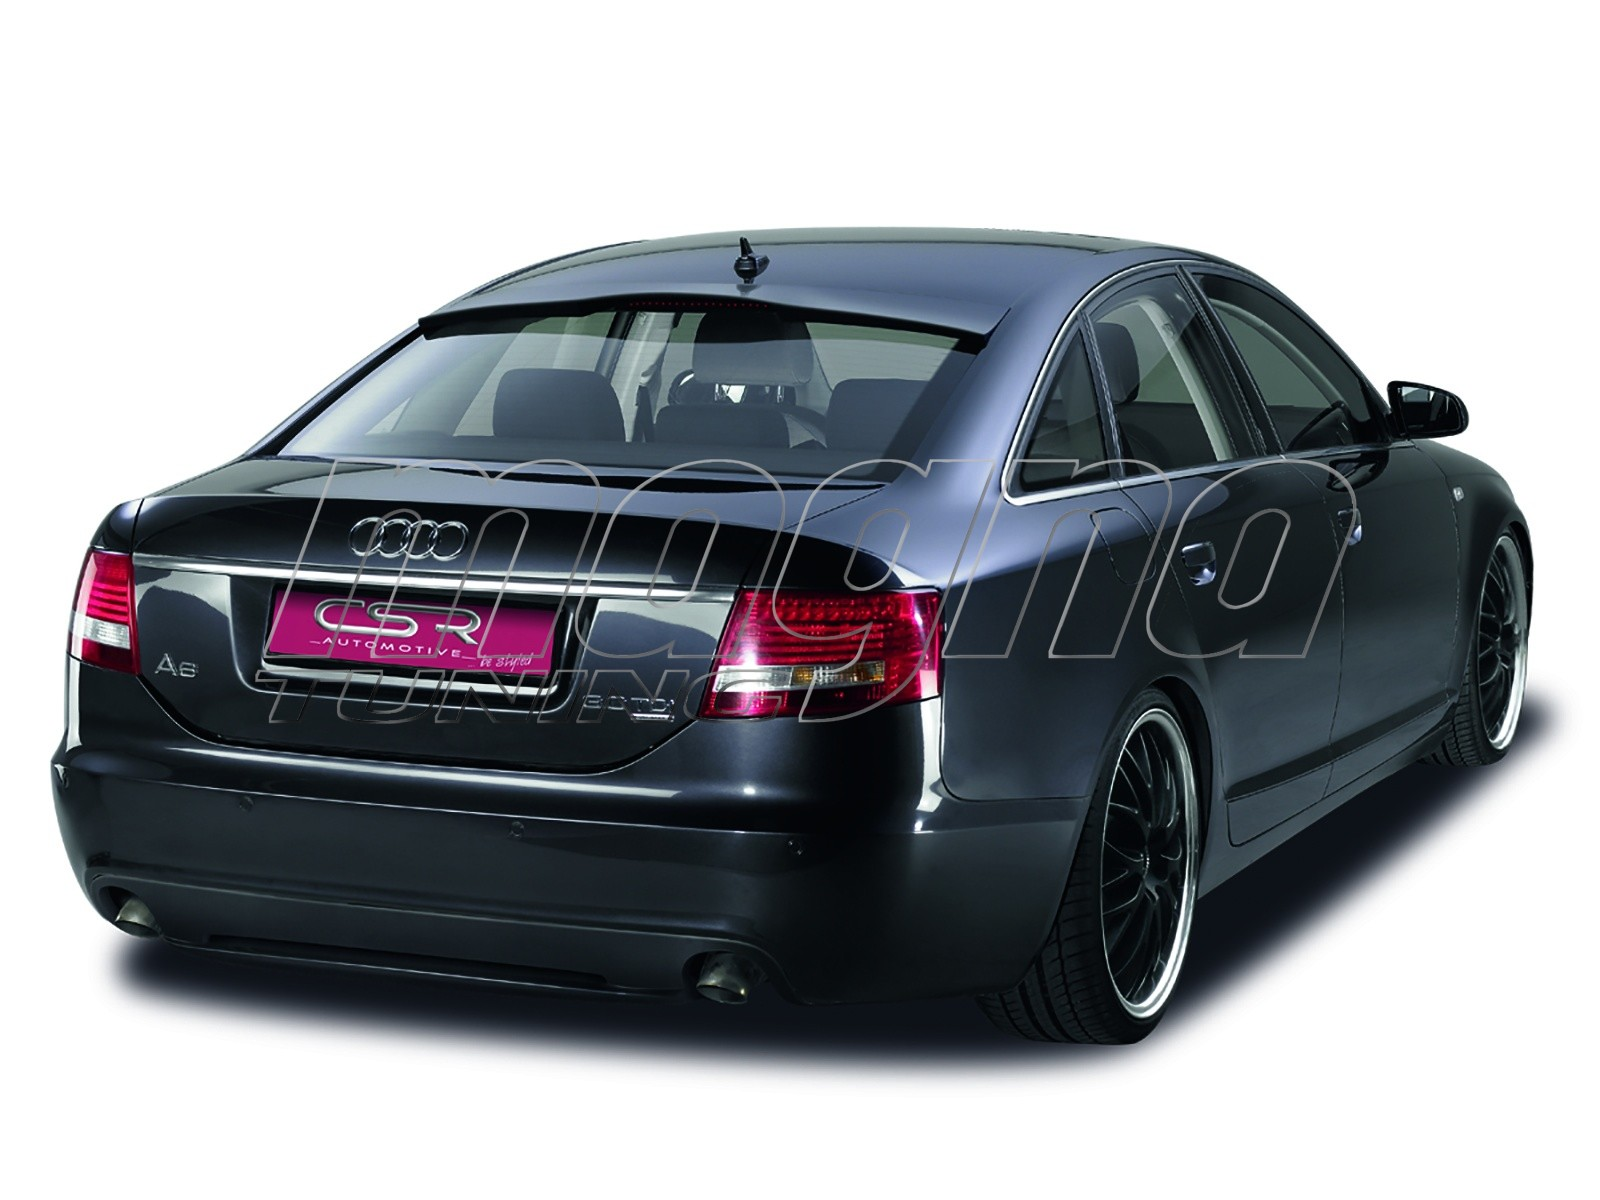 audi a6 c6 4f limousine xl line rear bumper extension. Black Bedroom Furniture Sets. Home Design Ideas